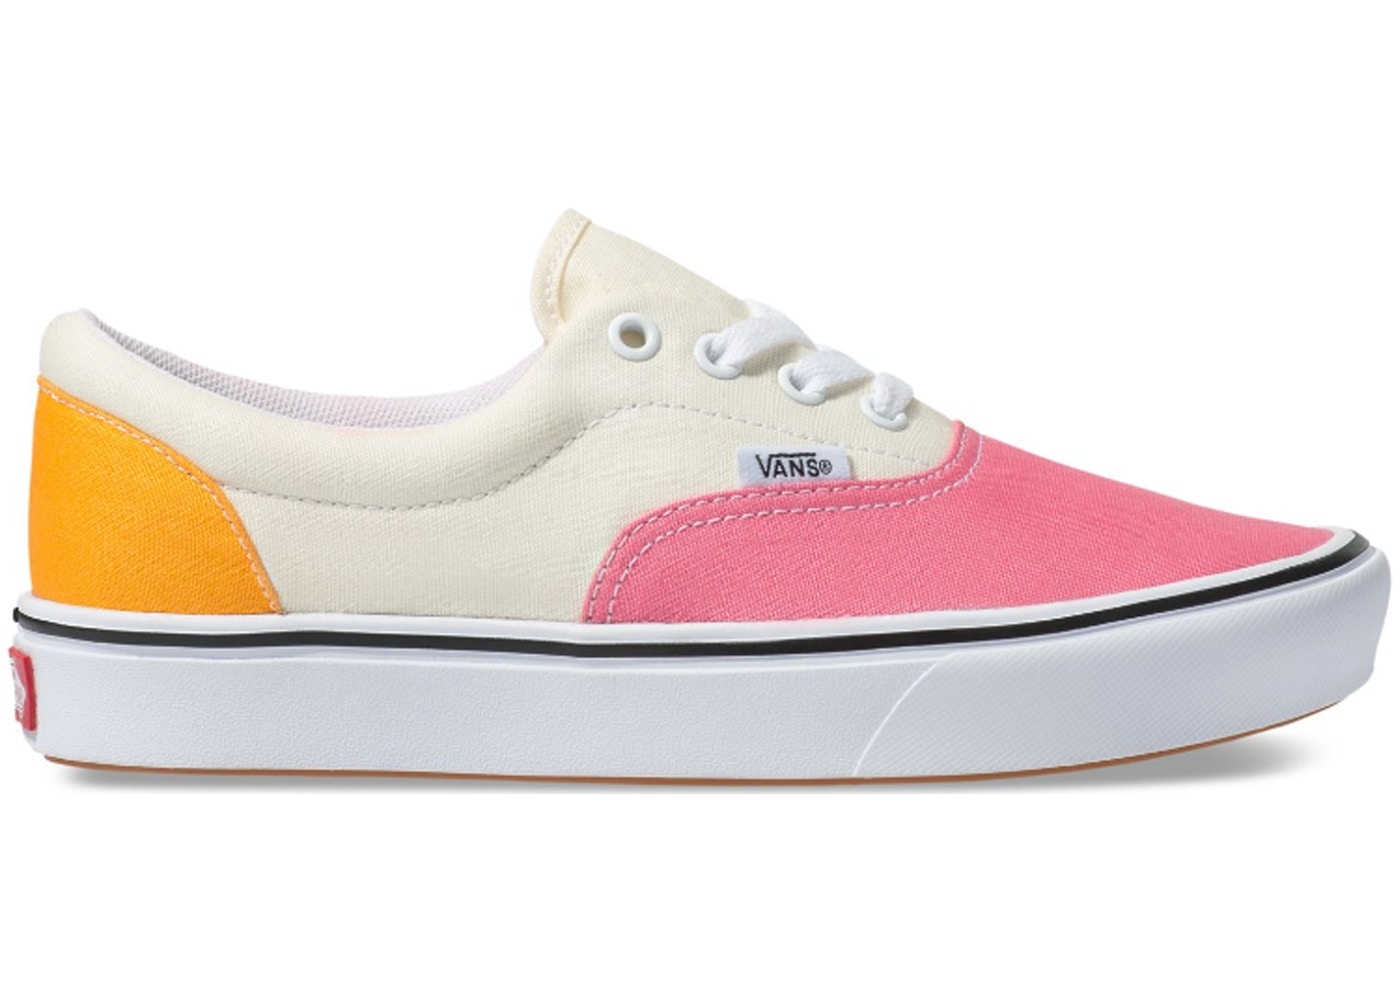 Vans Comfycush Era Strawberry Pink Zinnia - Sneakers